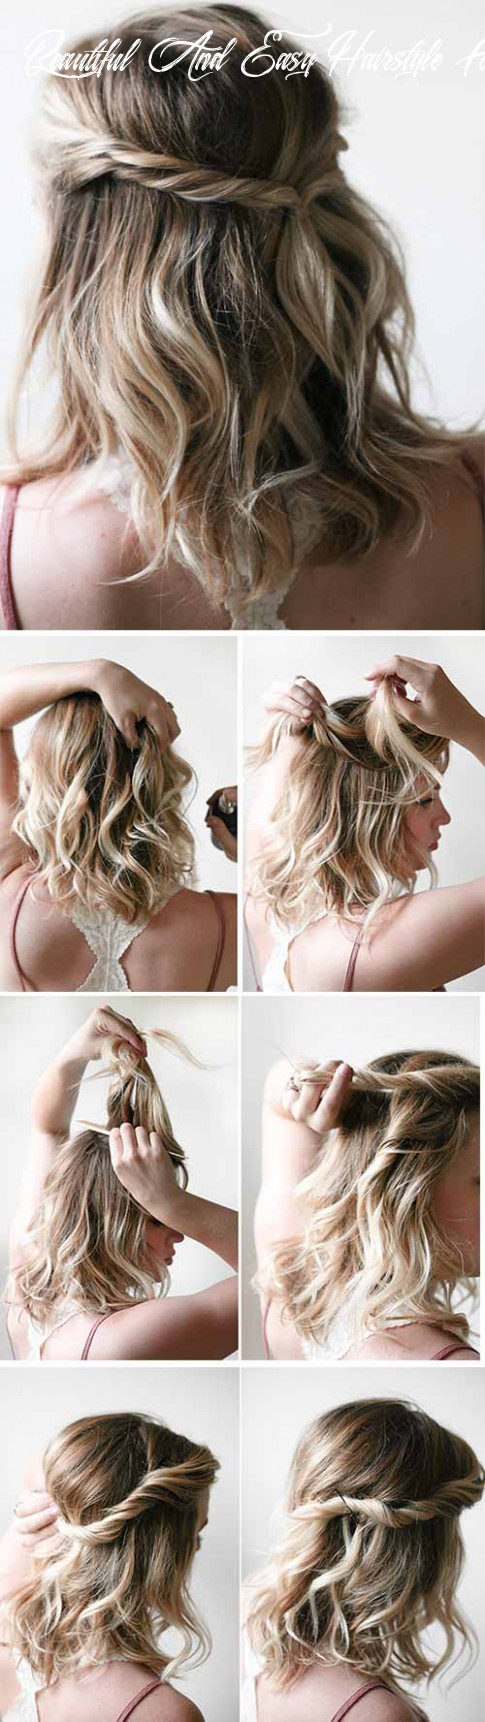 8 incredible diy short hairstyles a step by step guide beautiful and easy hairstyle for short hair